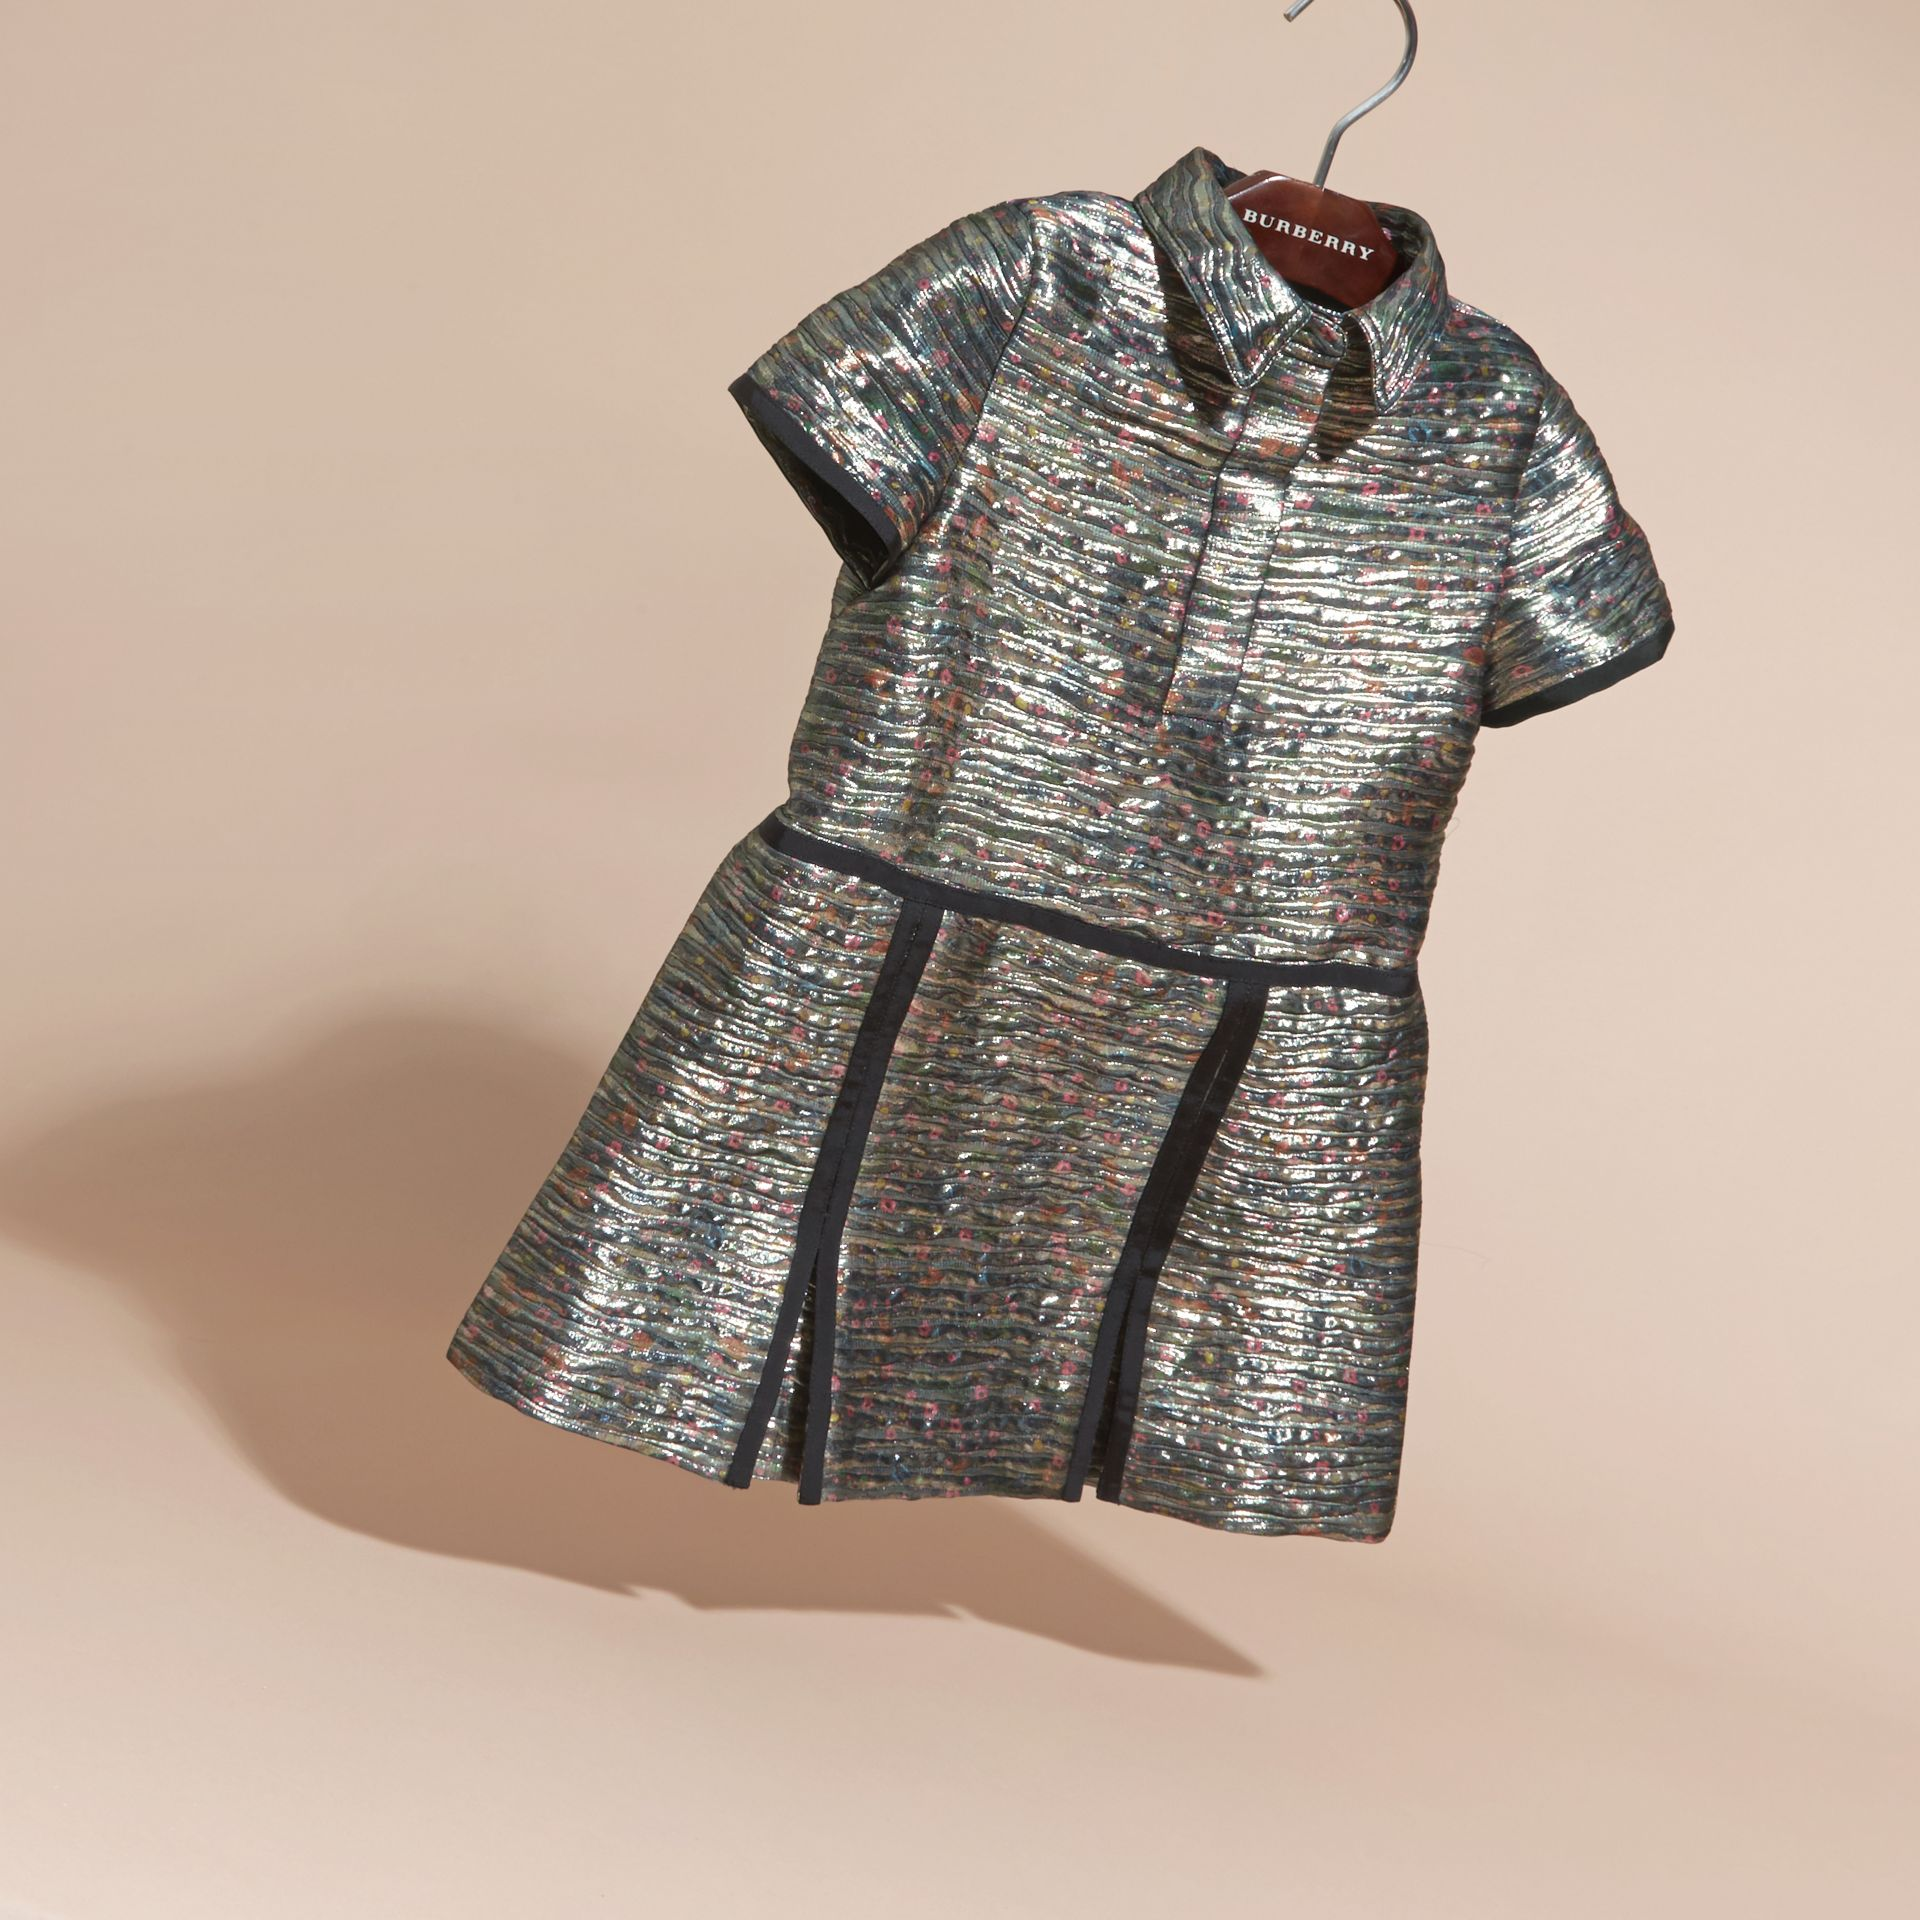 Mist grey Floral Print Metallic Silk Blend Shirt Dress - gallery image 3